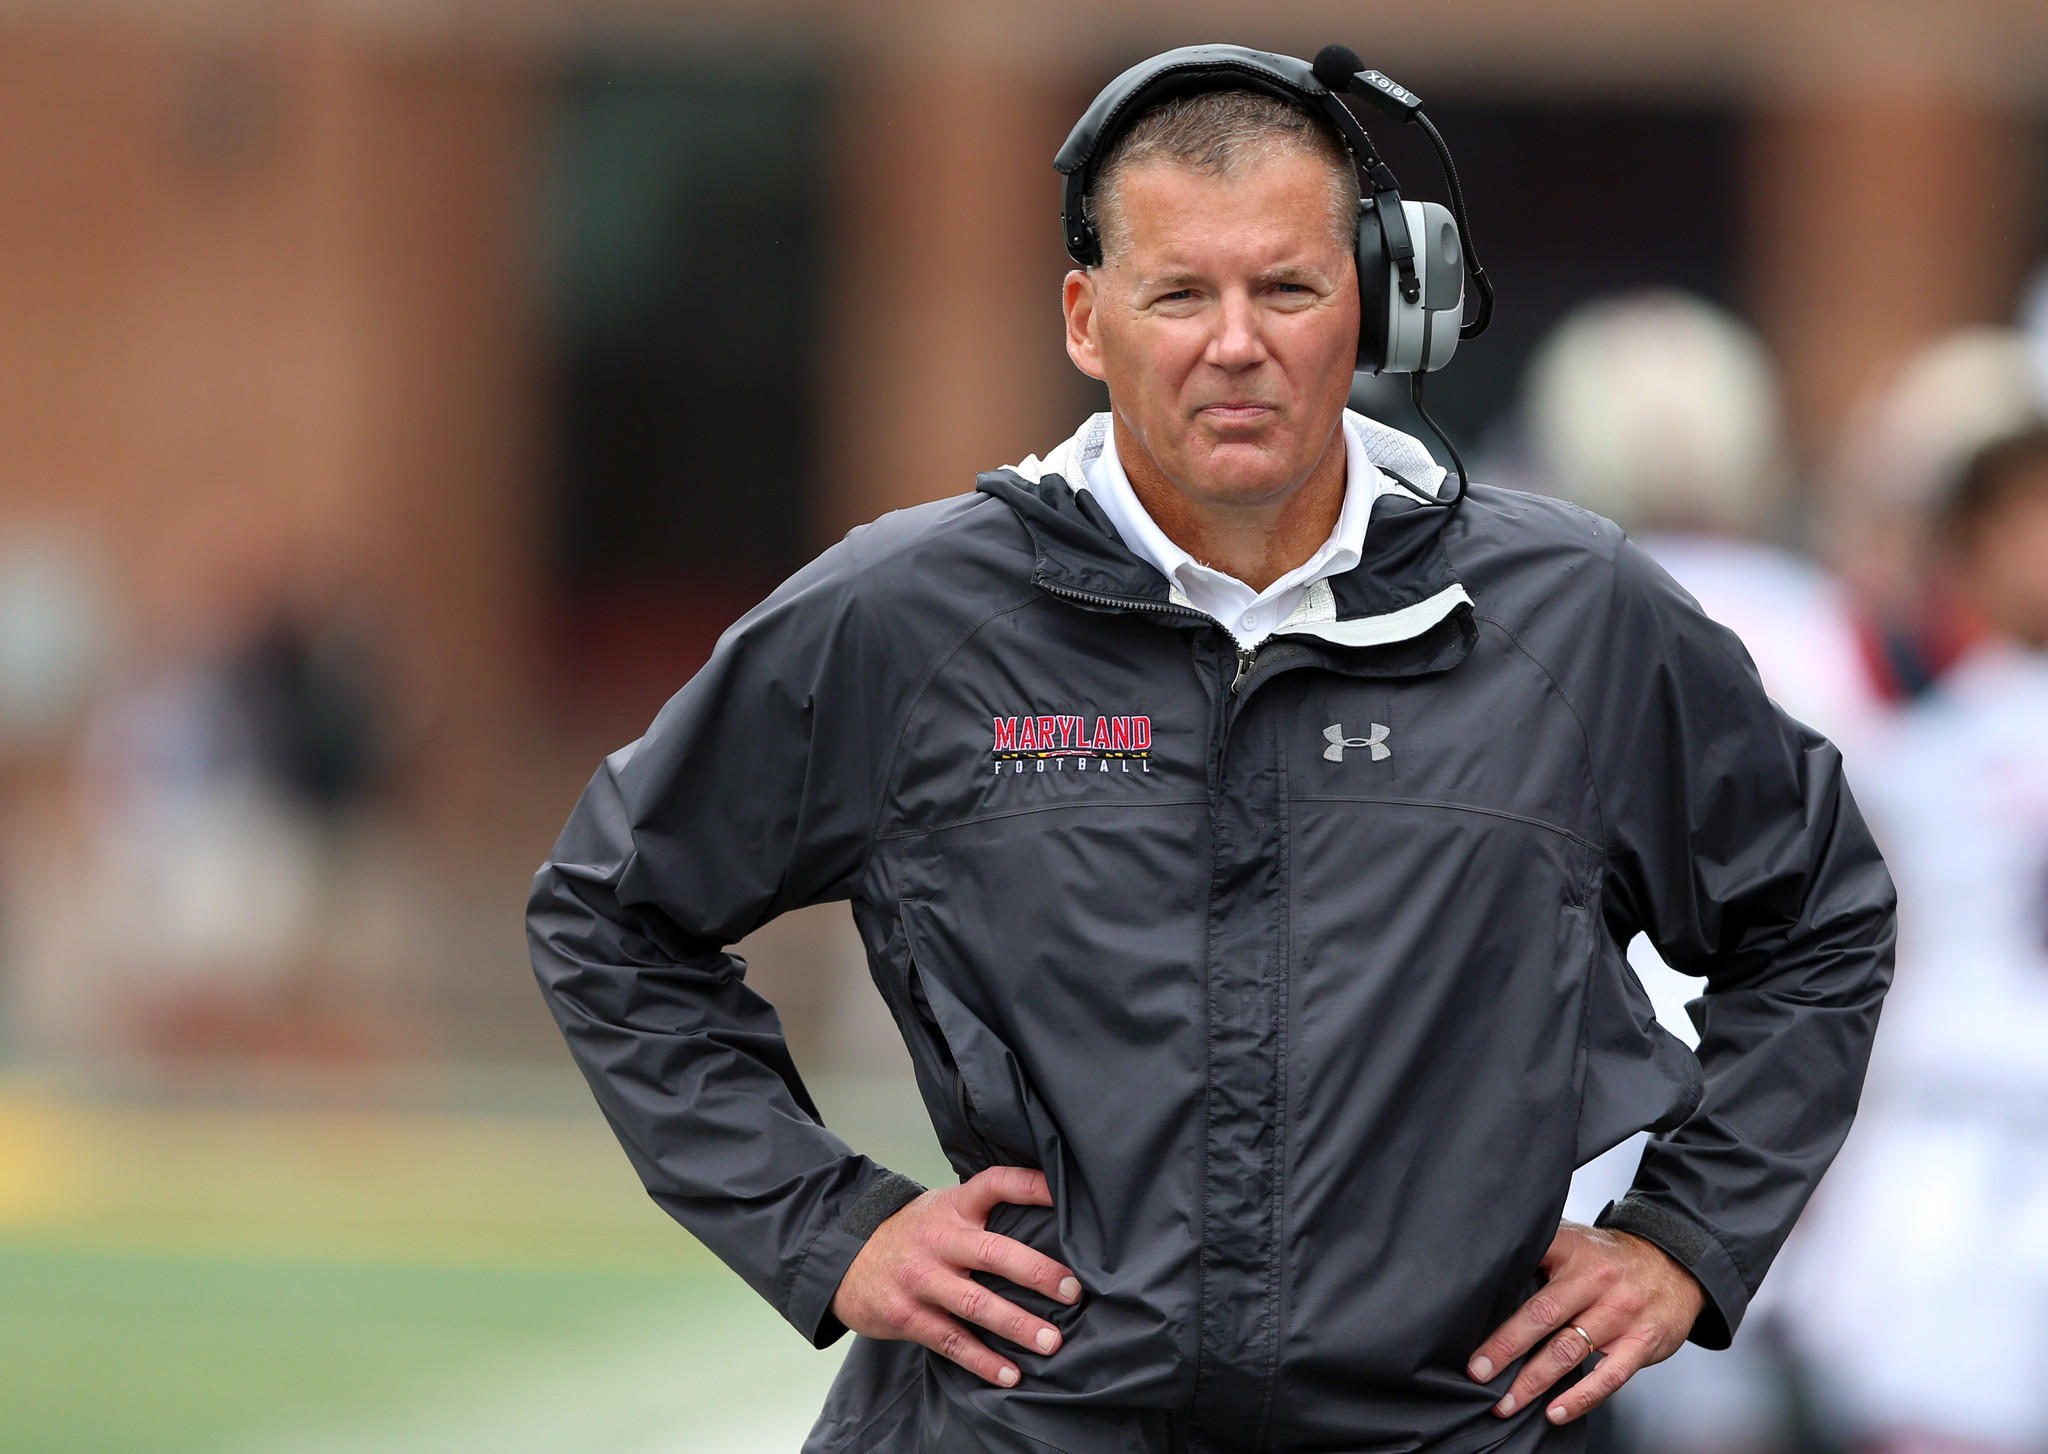 Maryland head coach Randy Edsall walks the sidelines against the the West Virginia Mountaineers at Byrd Stadium.